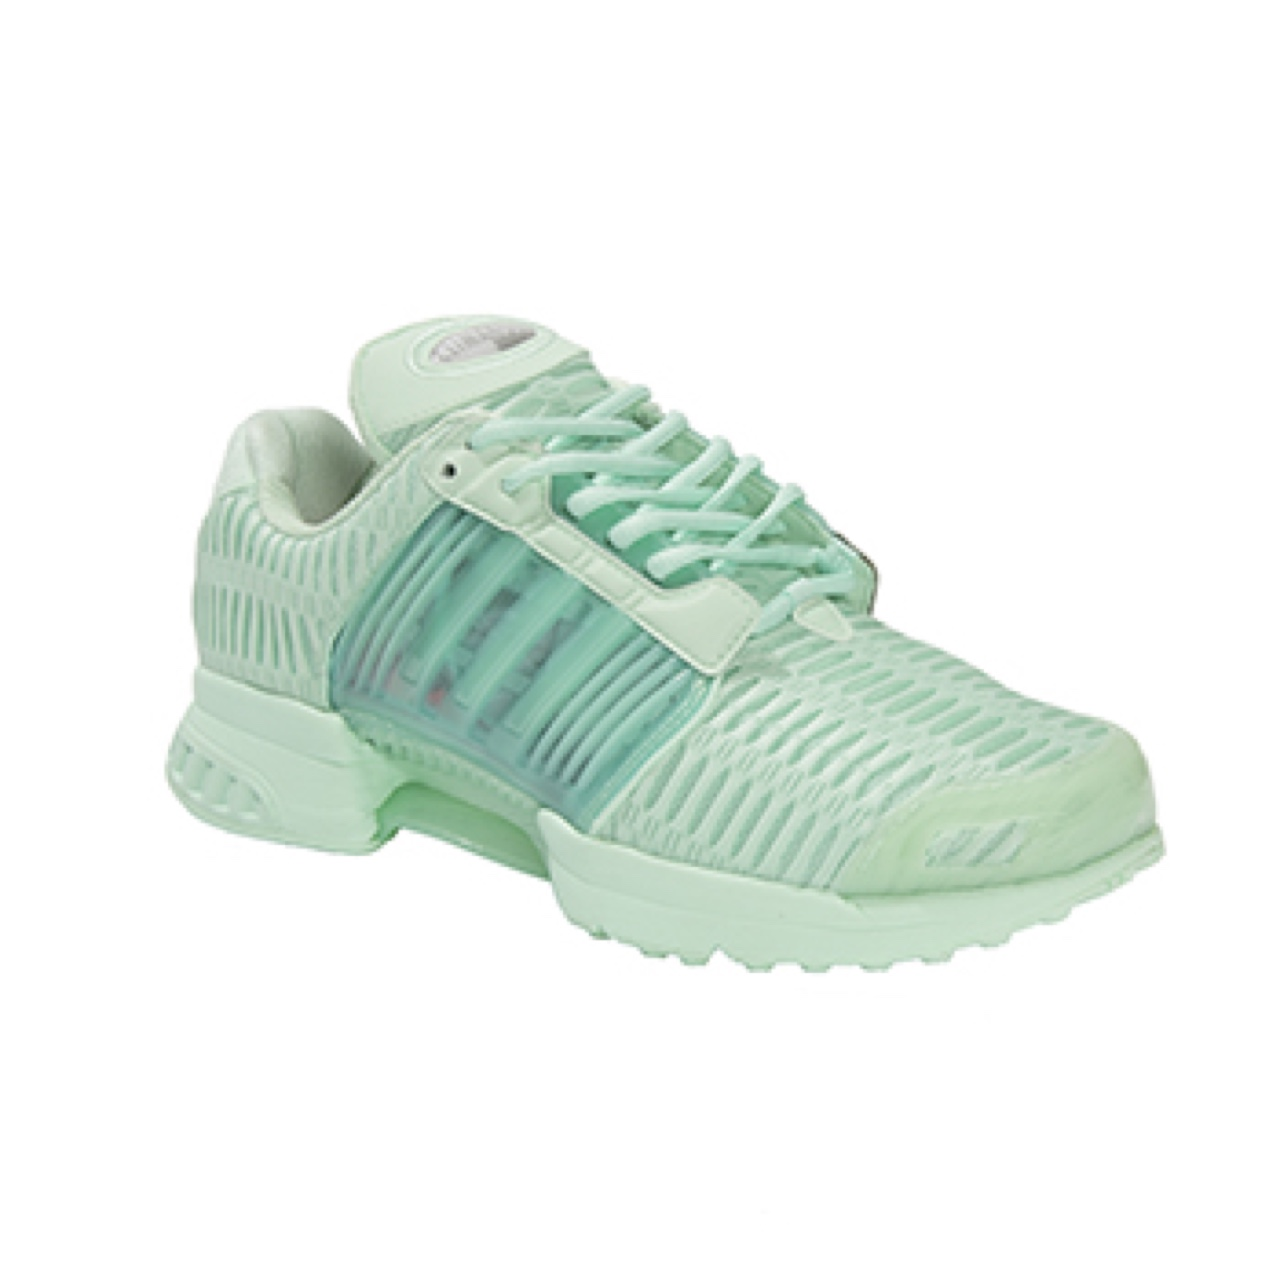 Adidas climacool frozen green trainers. Limited edition